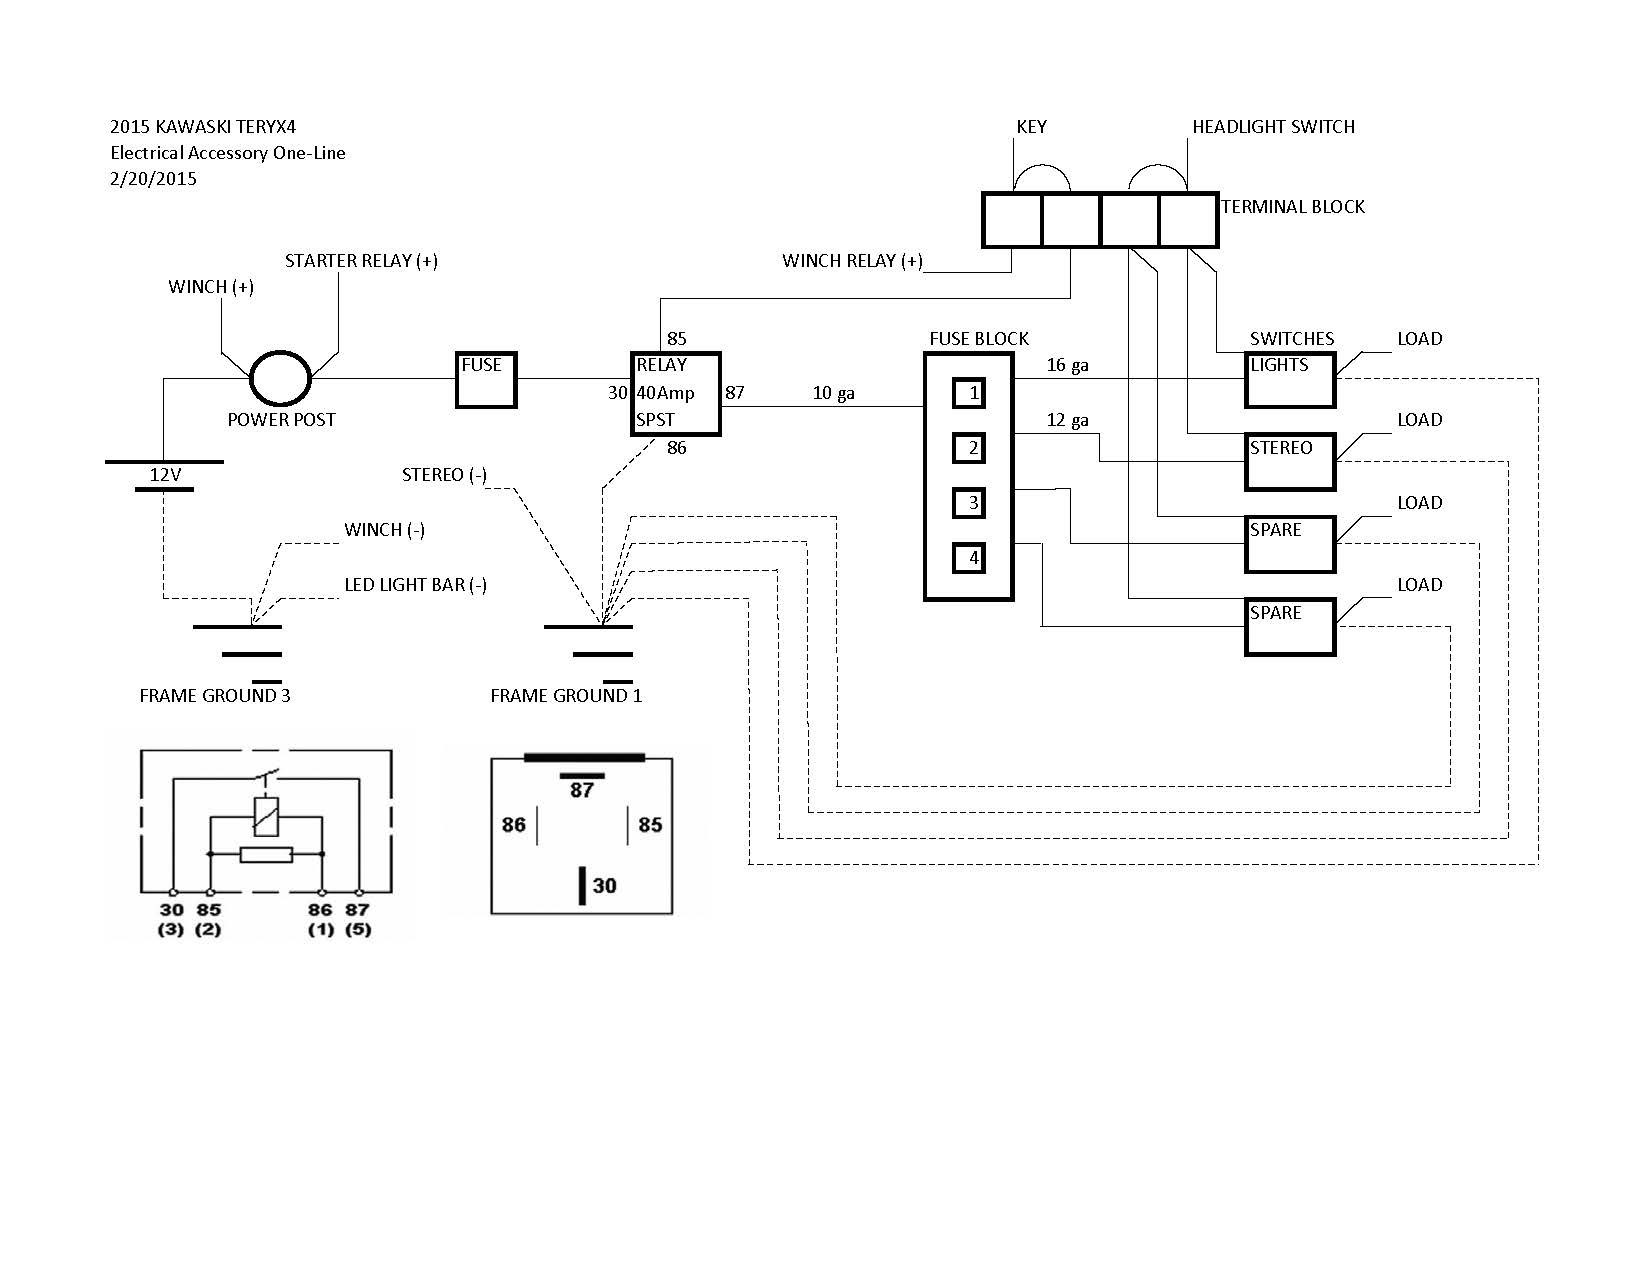 fuse block diagram ove zaislunamai uk 1988 Ford F-150 Fuse Box Diagram how to wire my fuse block kawasaki teryx forum fuse block diagram 2004 impala fuse block